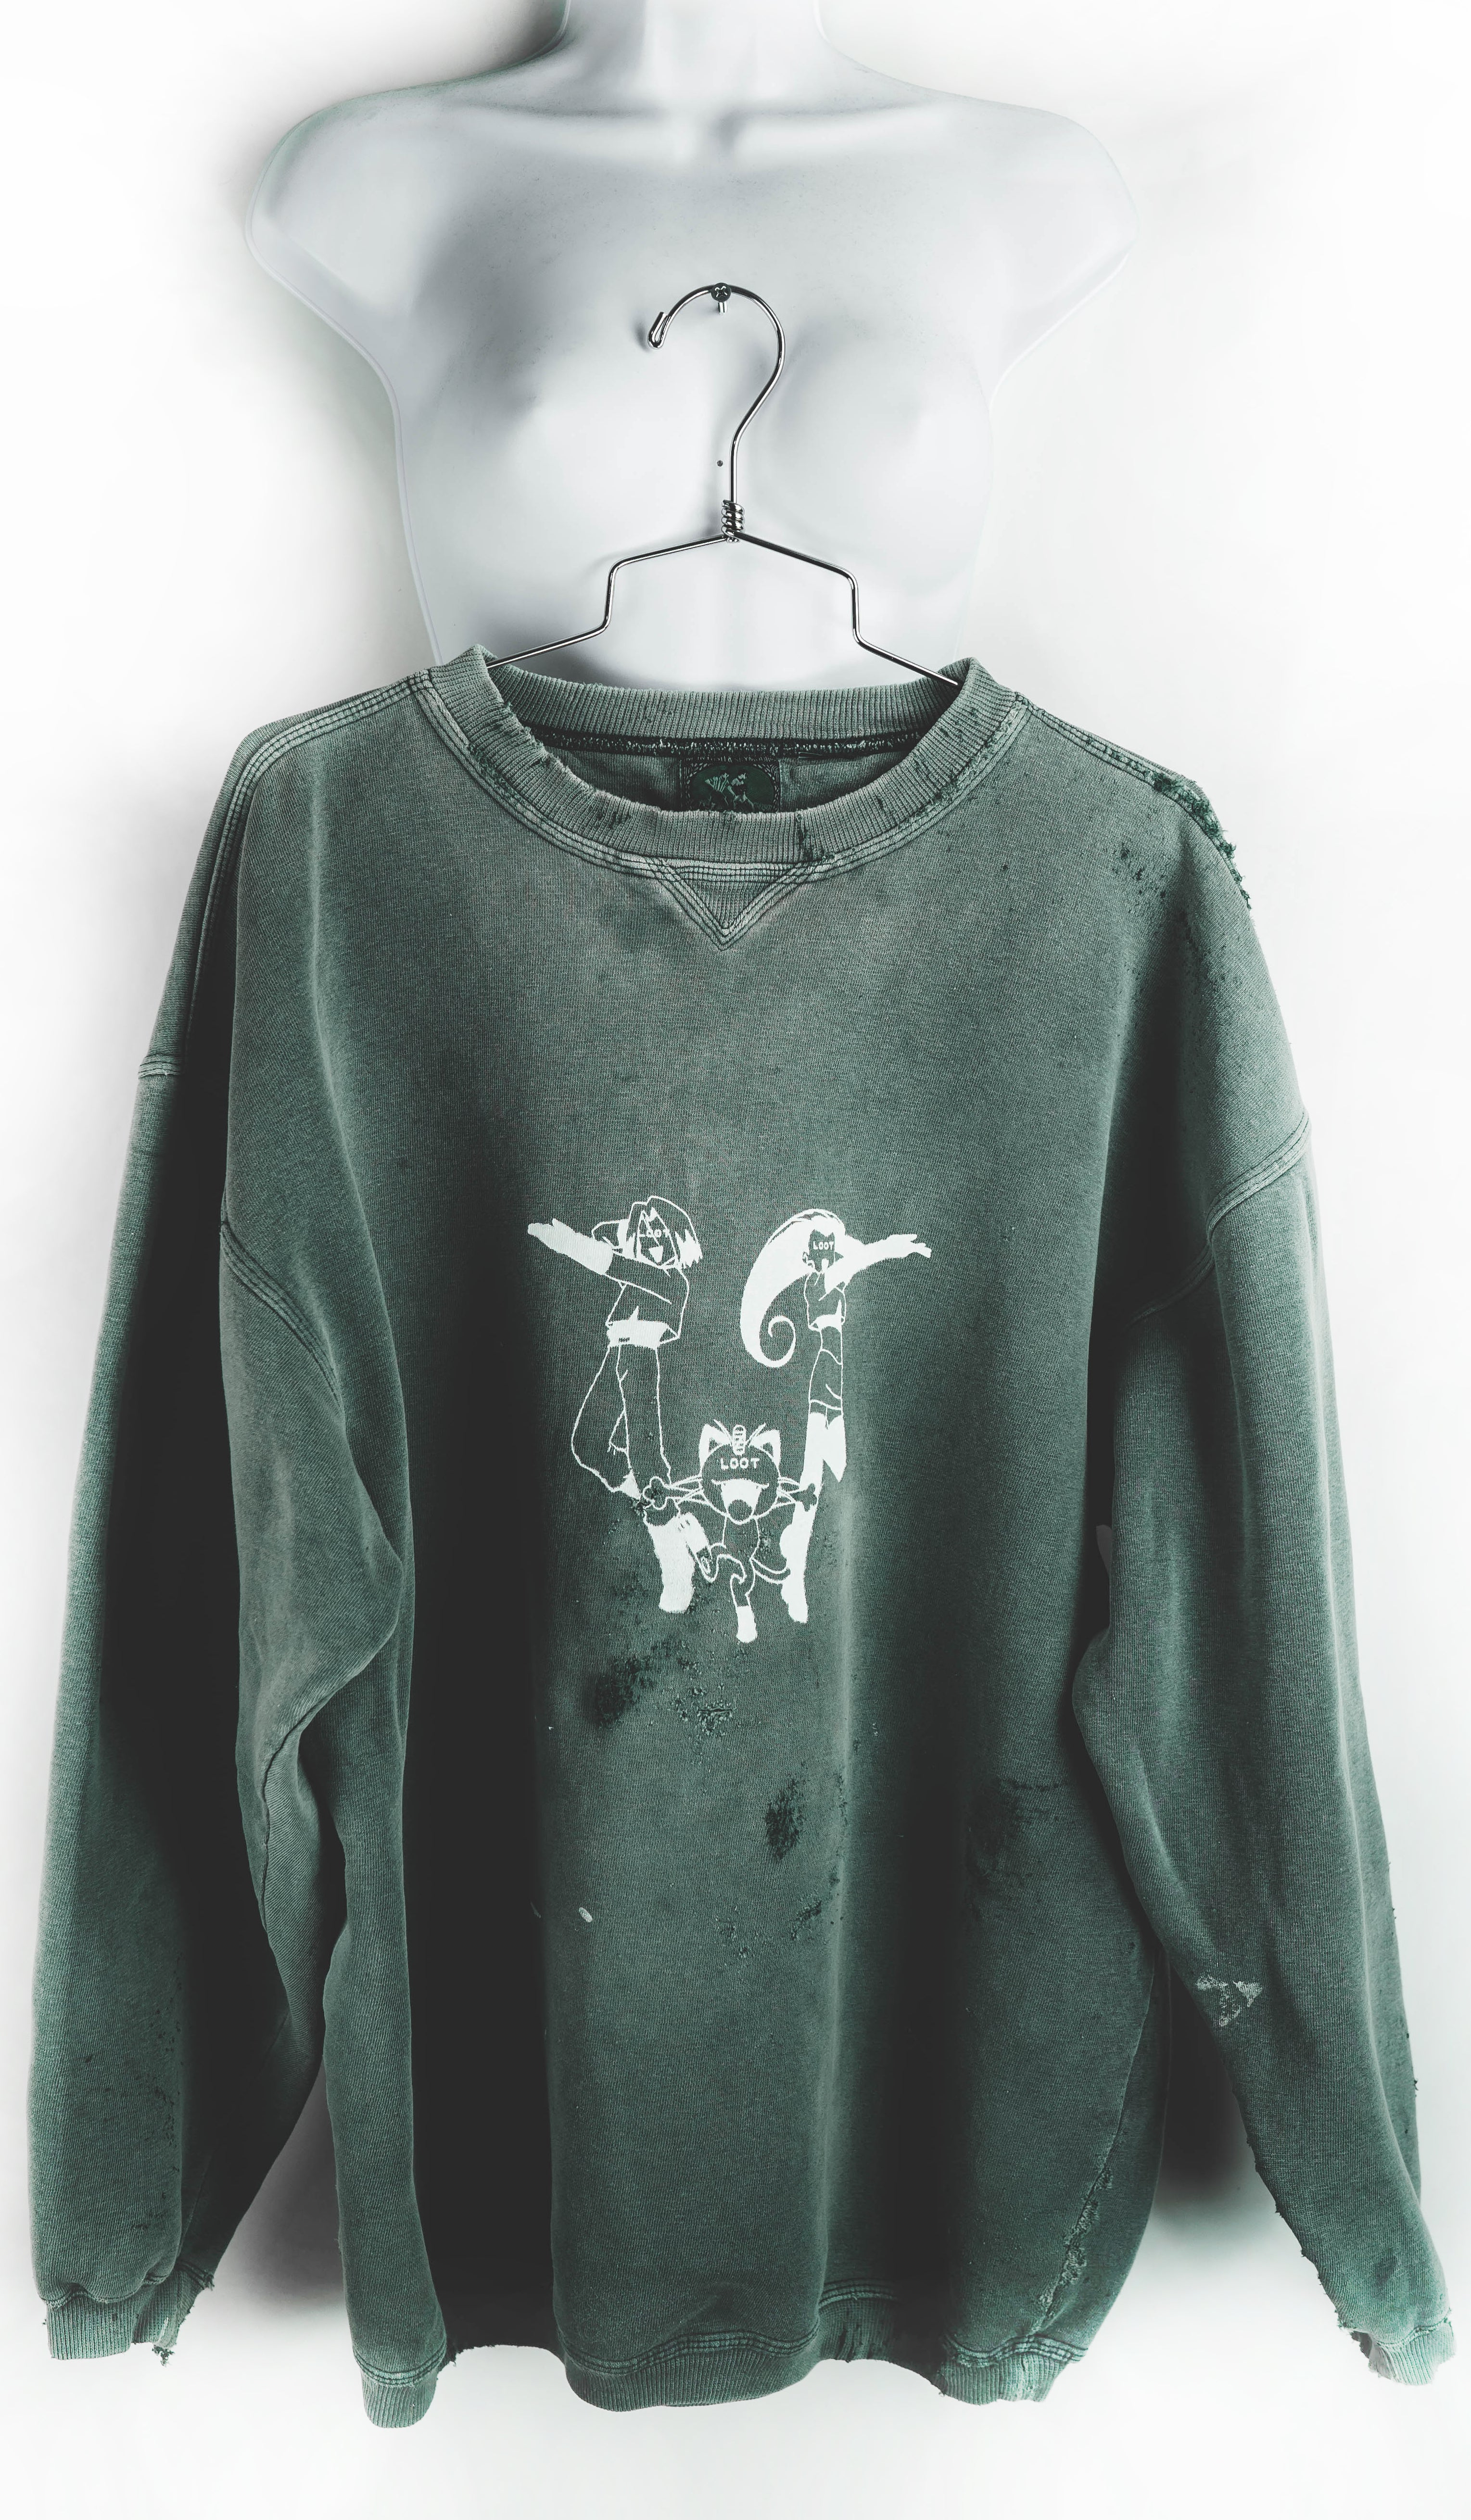 Forgotten Pieces Sweatshirt - XL